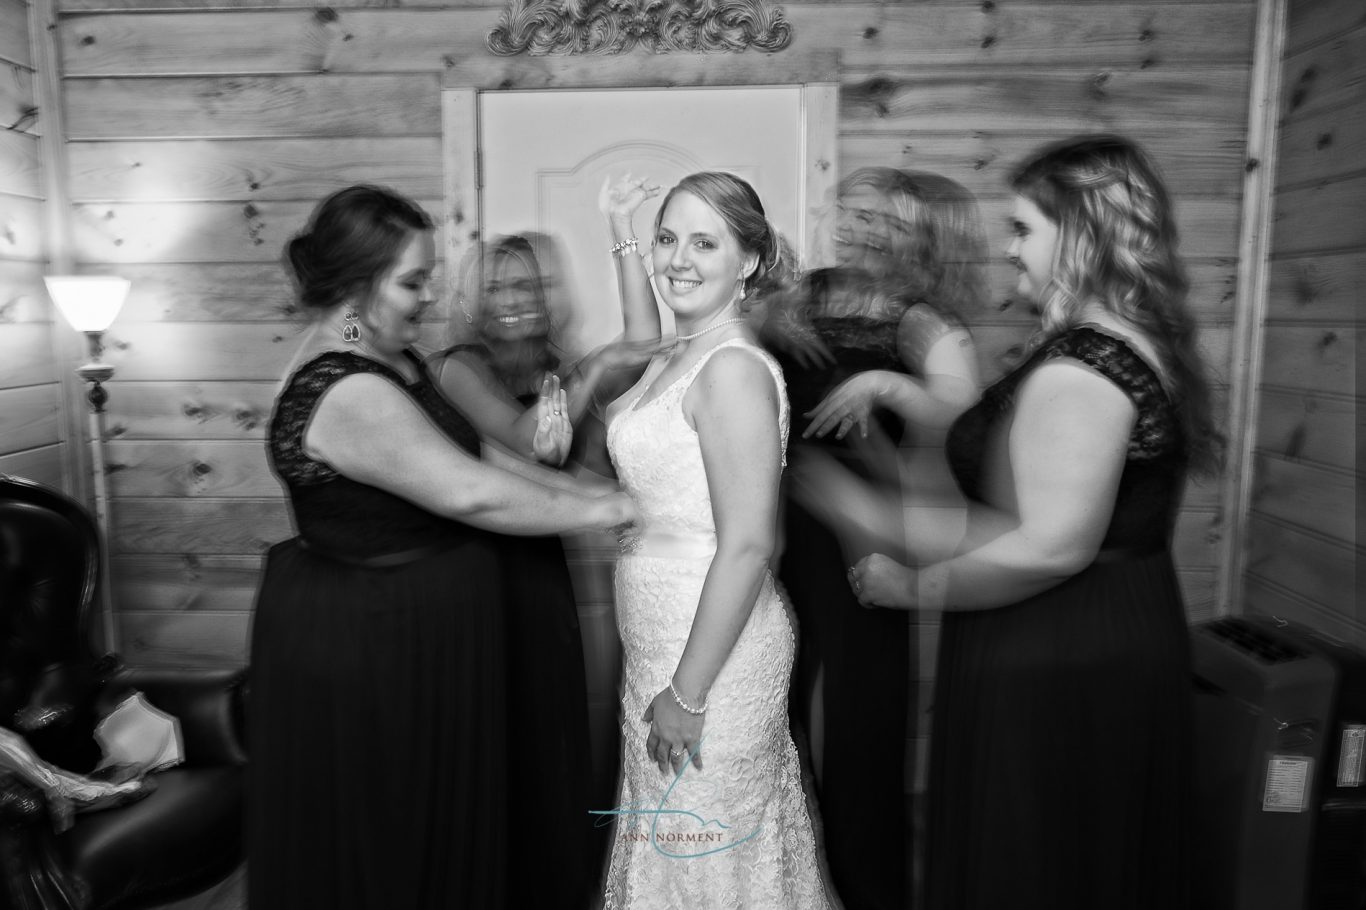 wedding photographer, charlotte nc, fort mill sc, lake wylie sc, ashville nc, hilton head sc, charleston sc, weddington nc, waxhaw nc